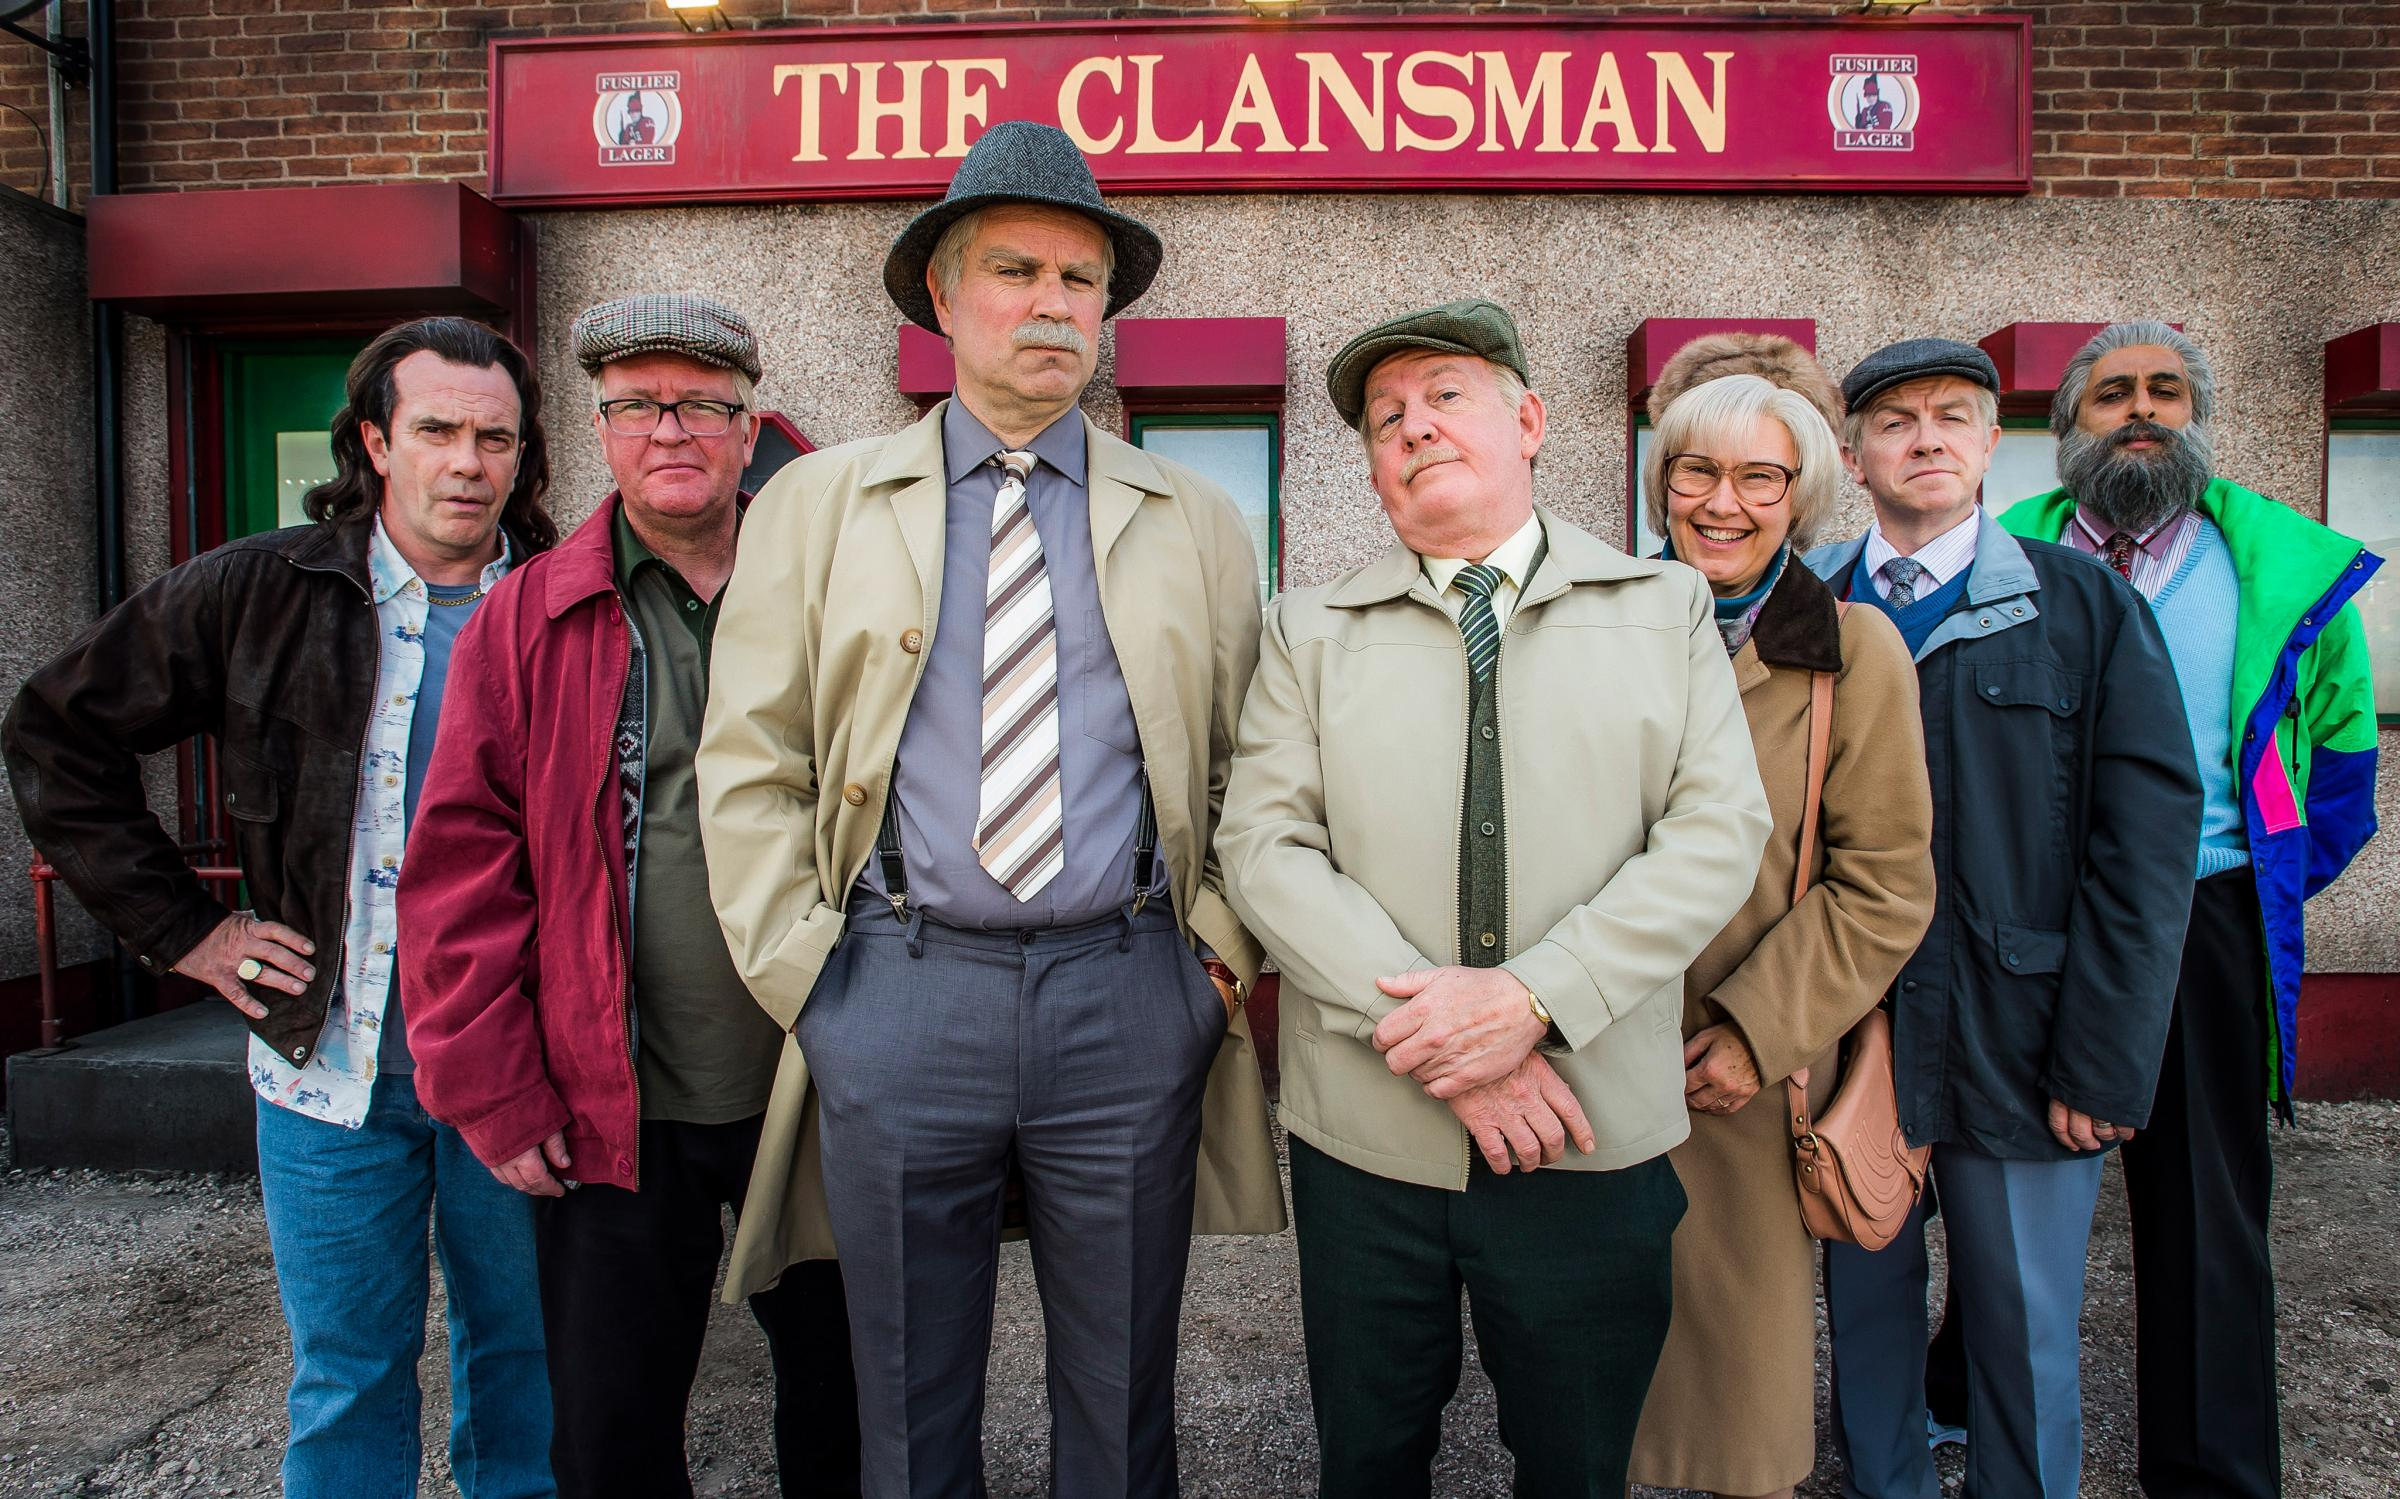 Still Game actor pays tribute to show as he puts costume on for the last time